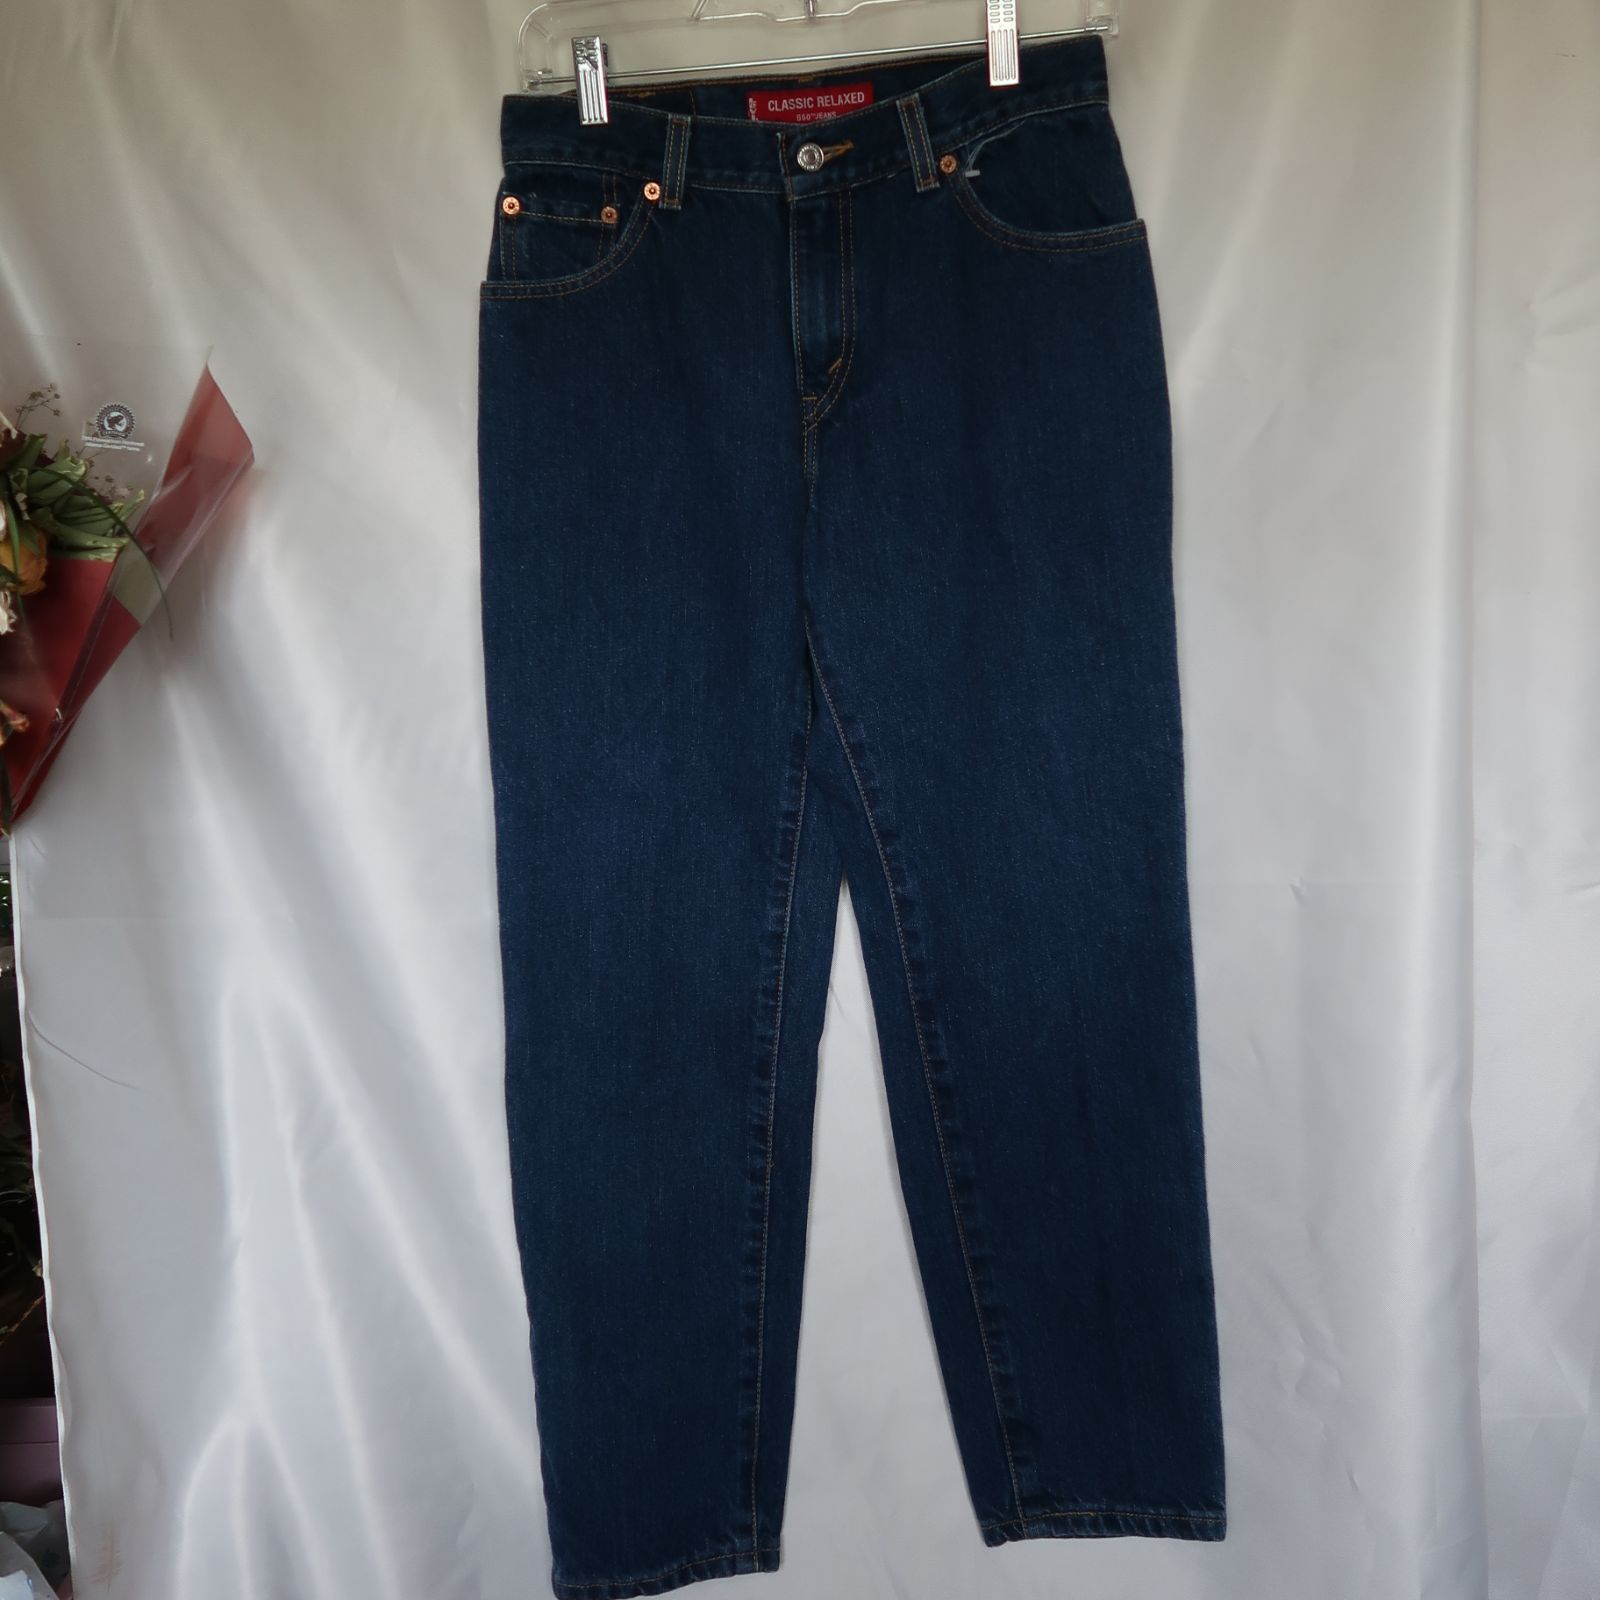 LEVI'S CLASSIC RELAXED JEANS